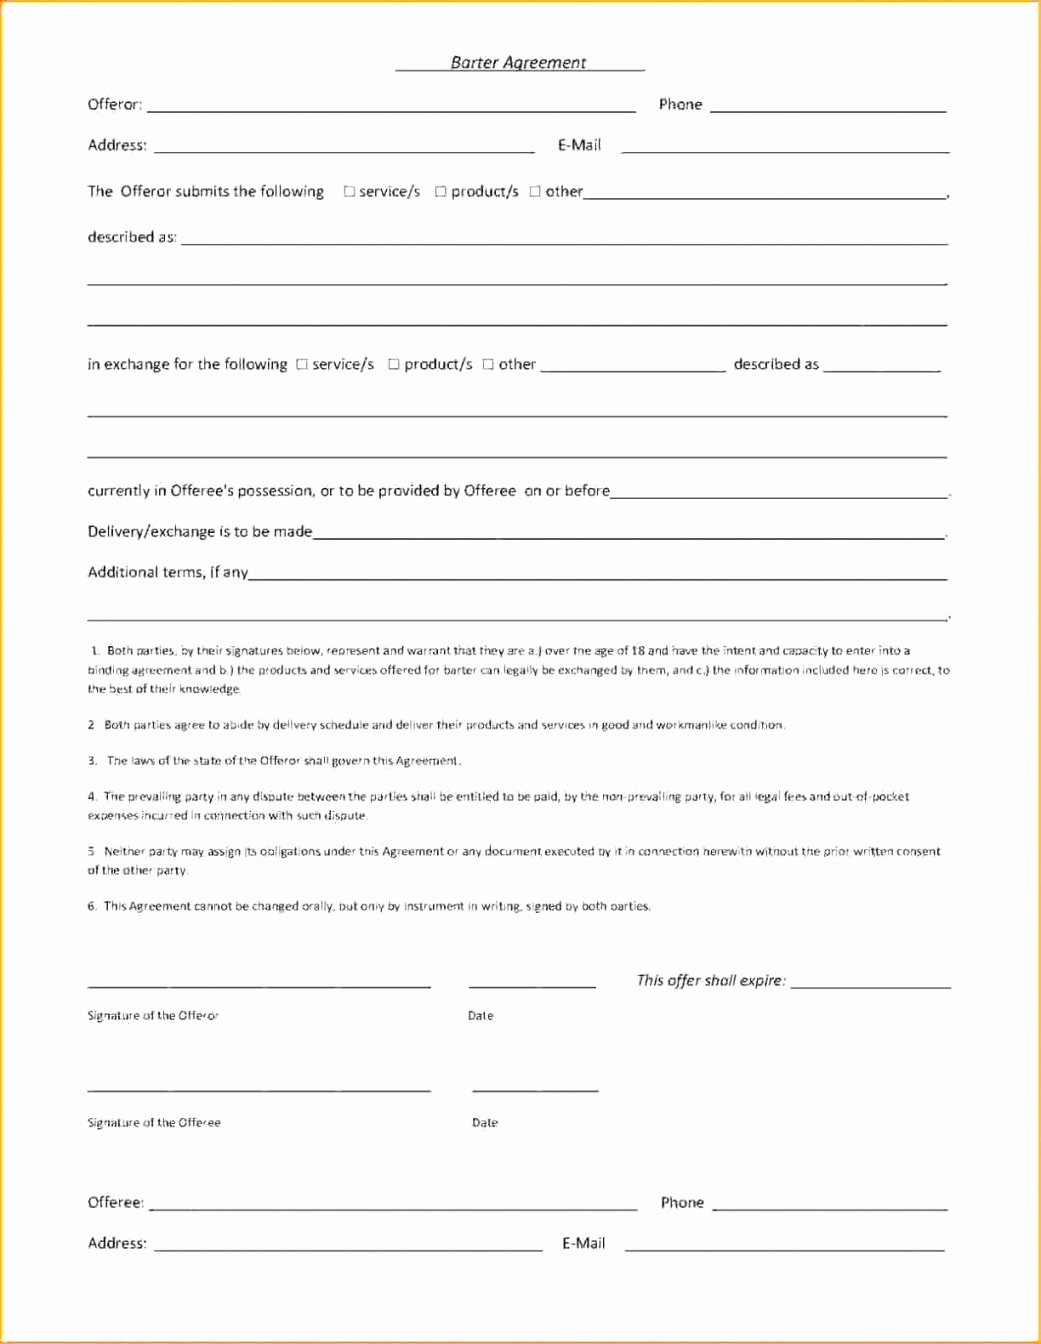 Simple Advertising Contract Template New the Sample Of Simple Advertising Agreement Template